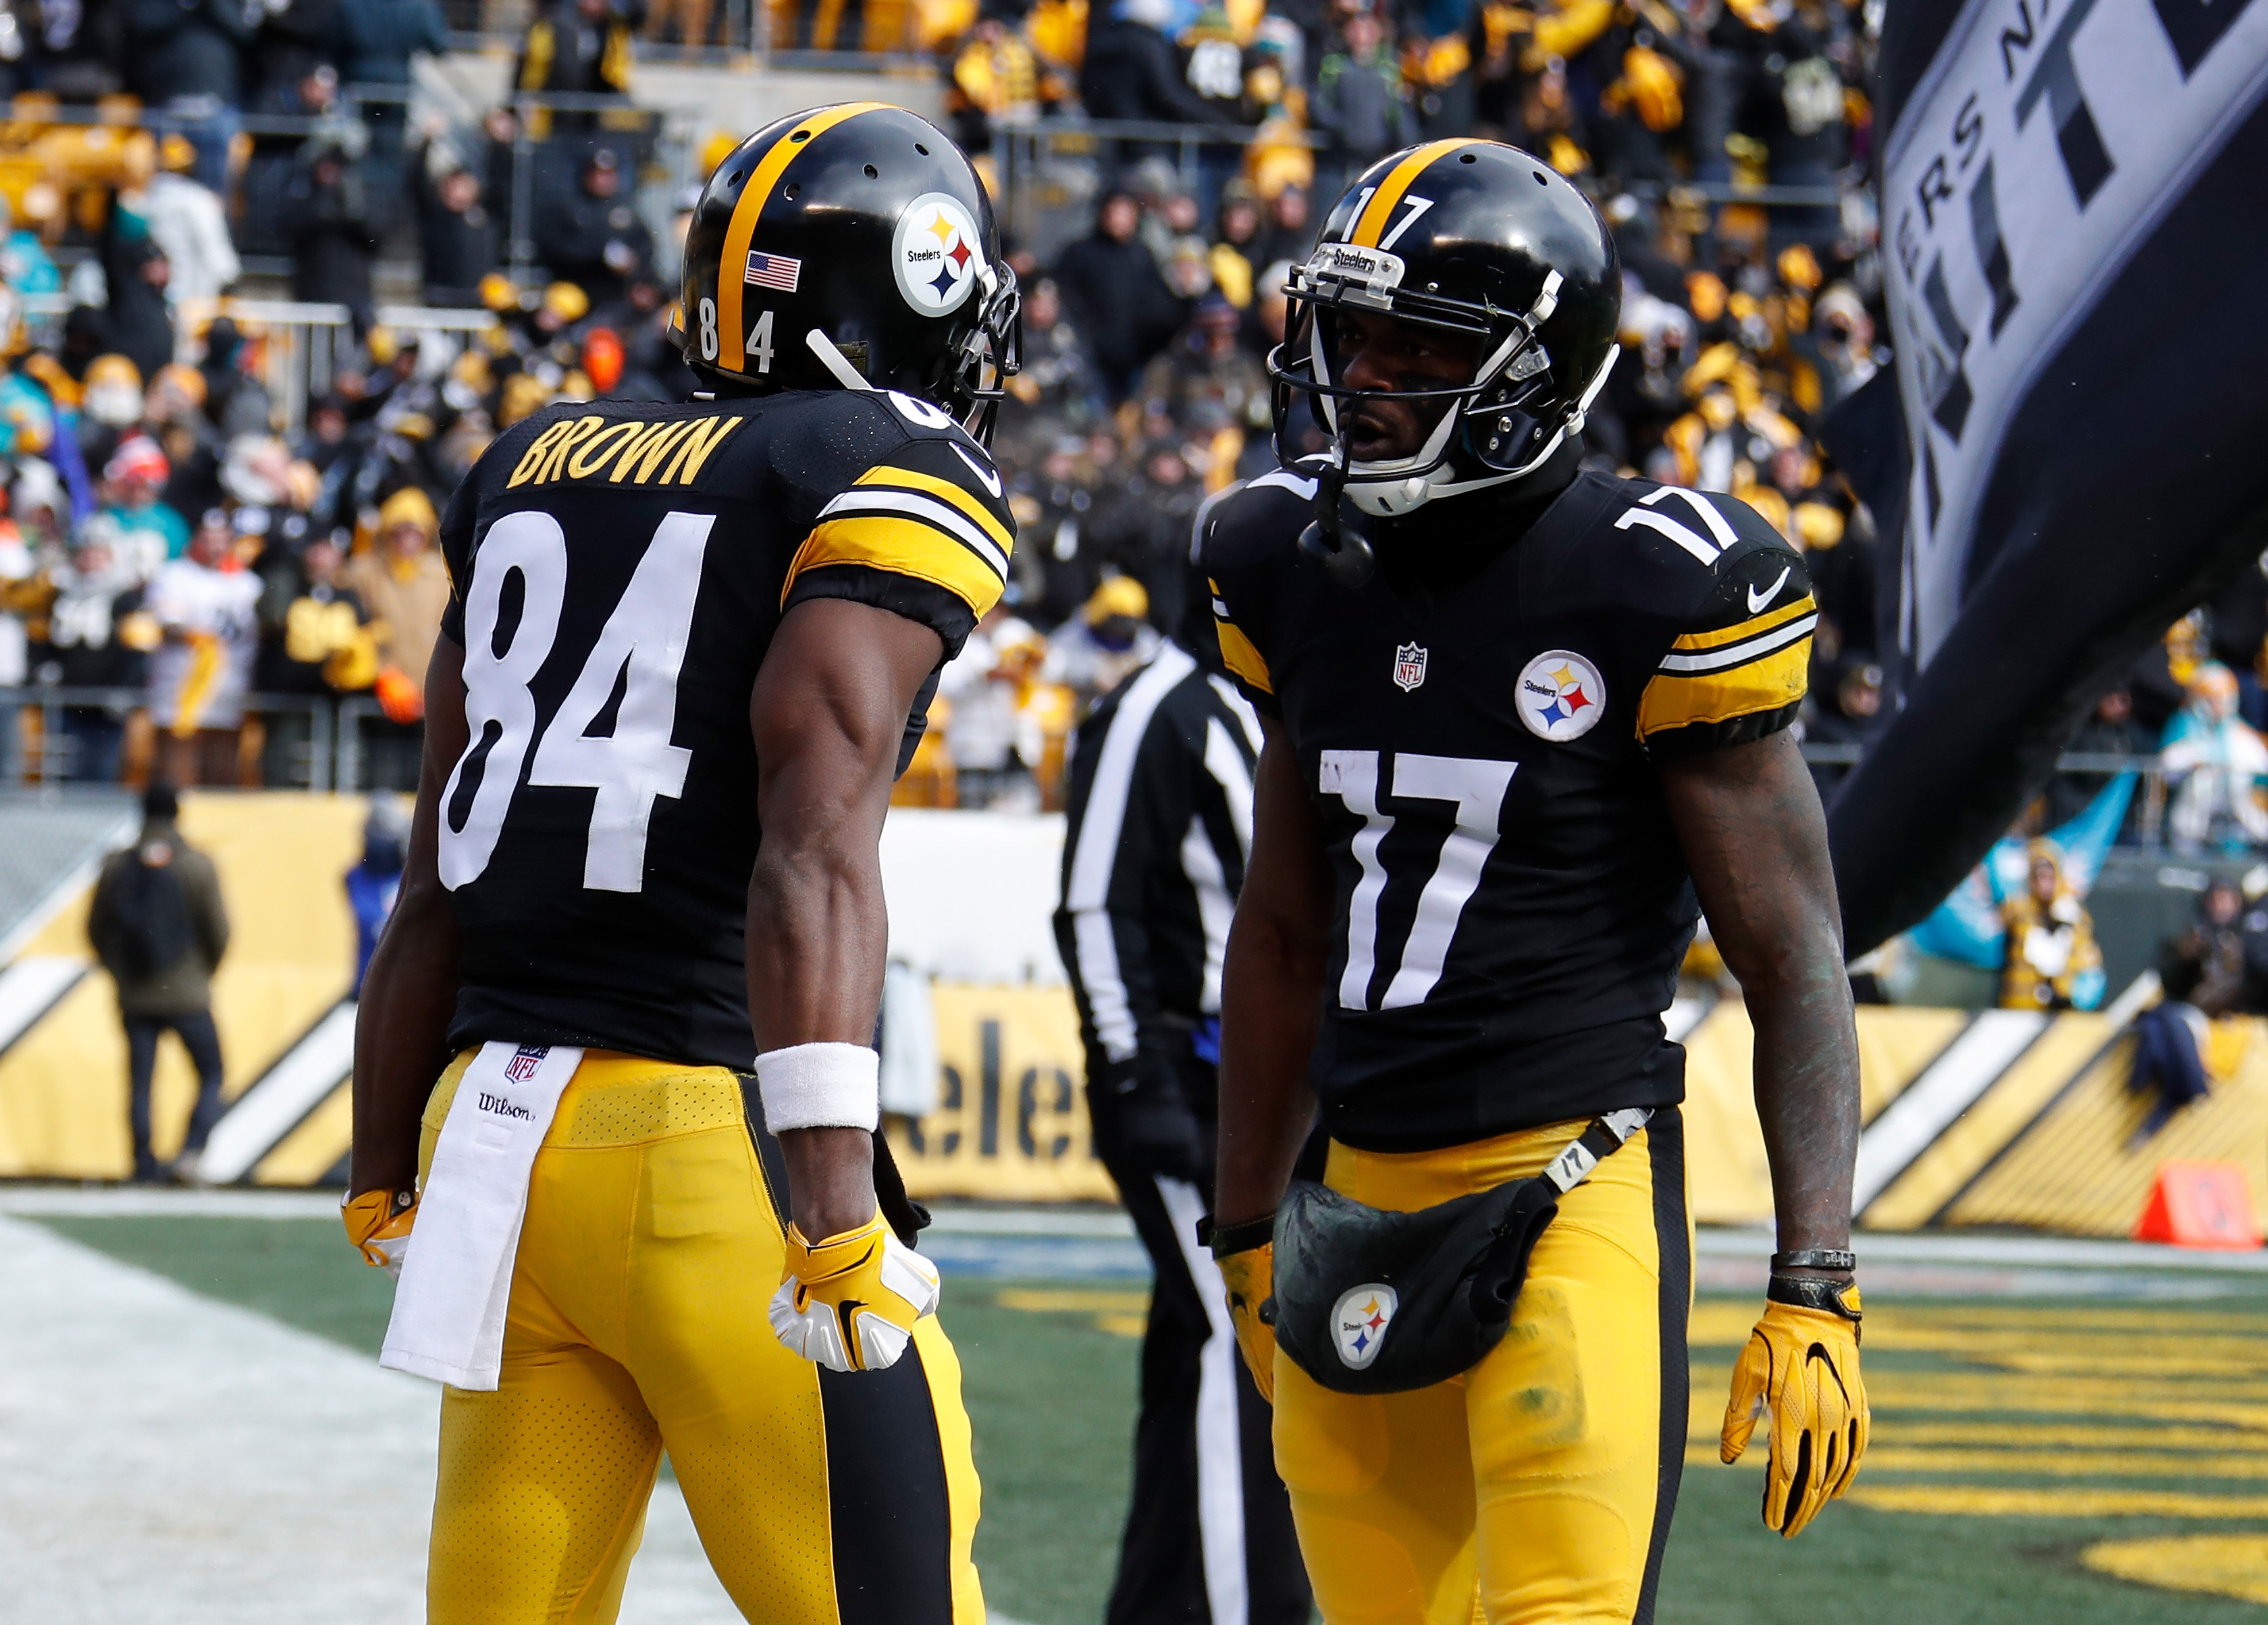 631225884-wild-card-round-miami-dolphins-v-pittsburgh-steelers.jpg